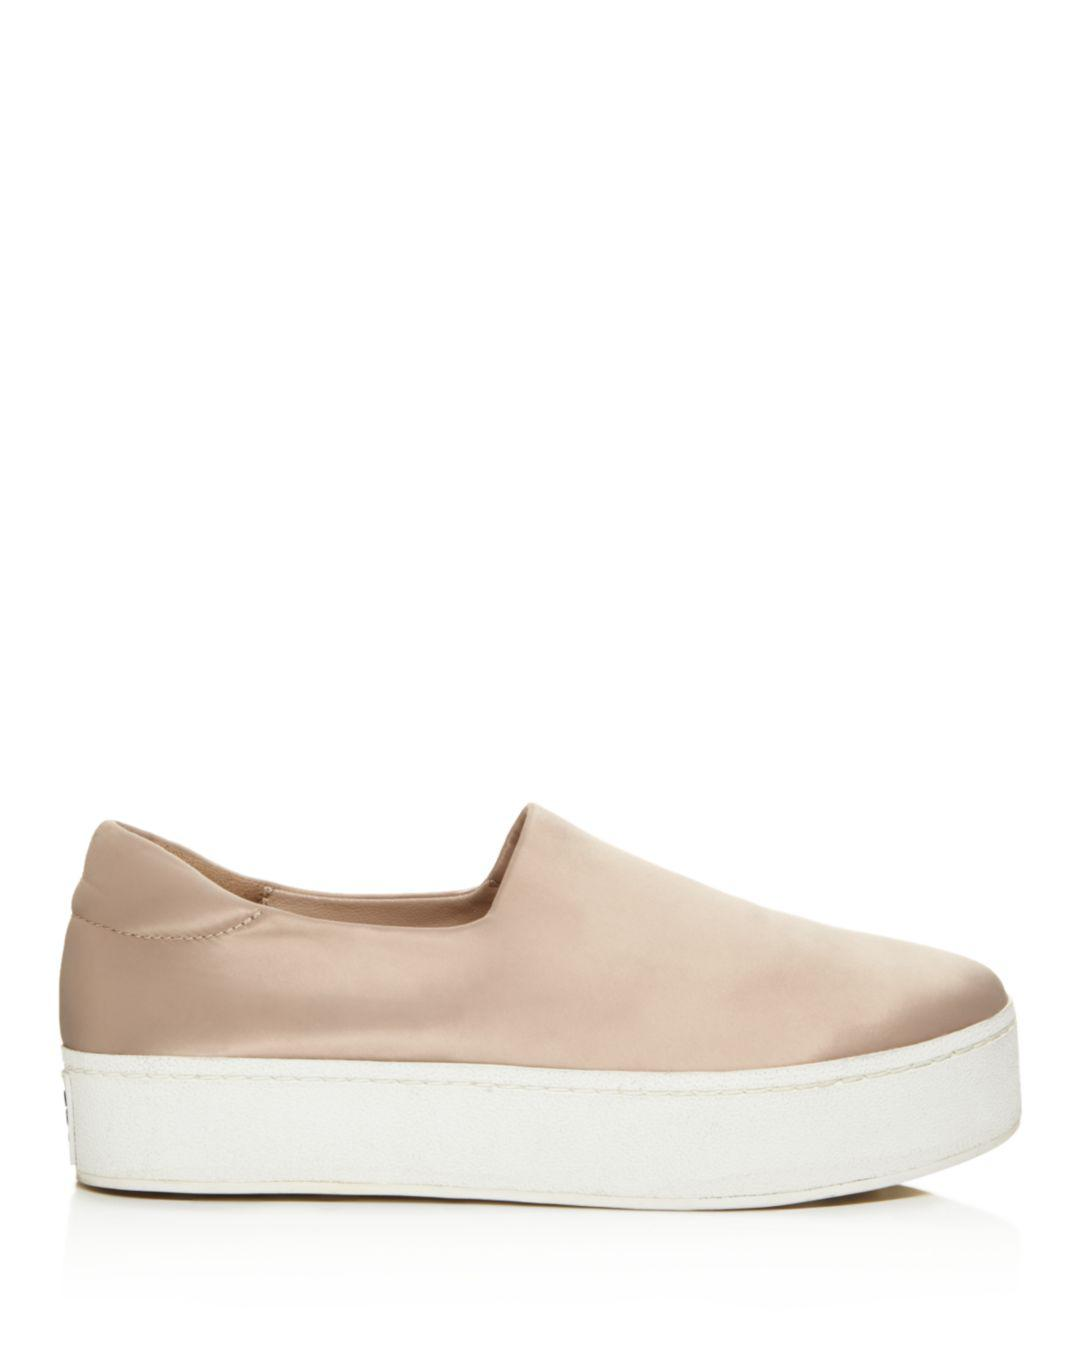 66f4179601bb Lyst - Opening Ceremony Cici Satin Platform Slip-on Sneakers in Natural -  Save 68%